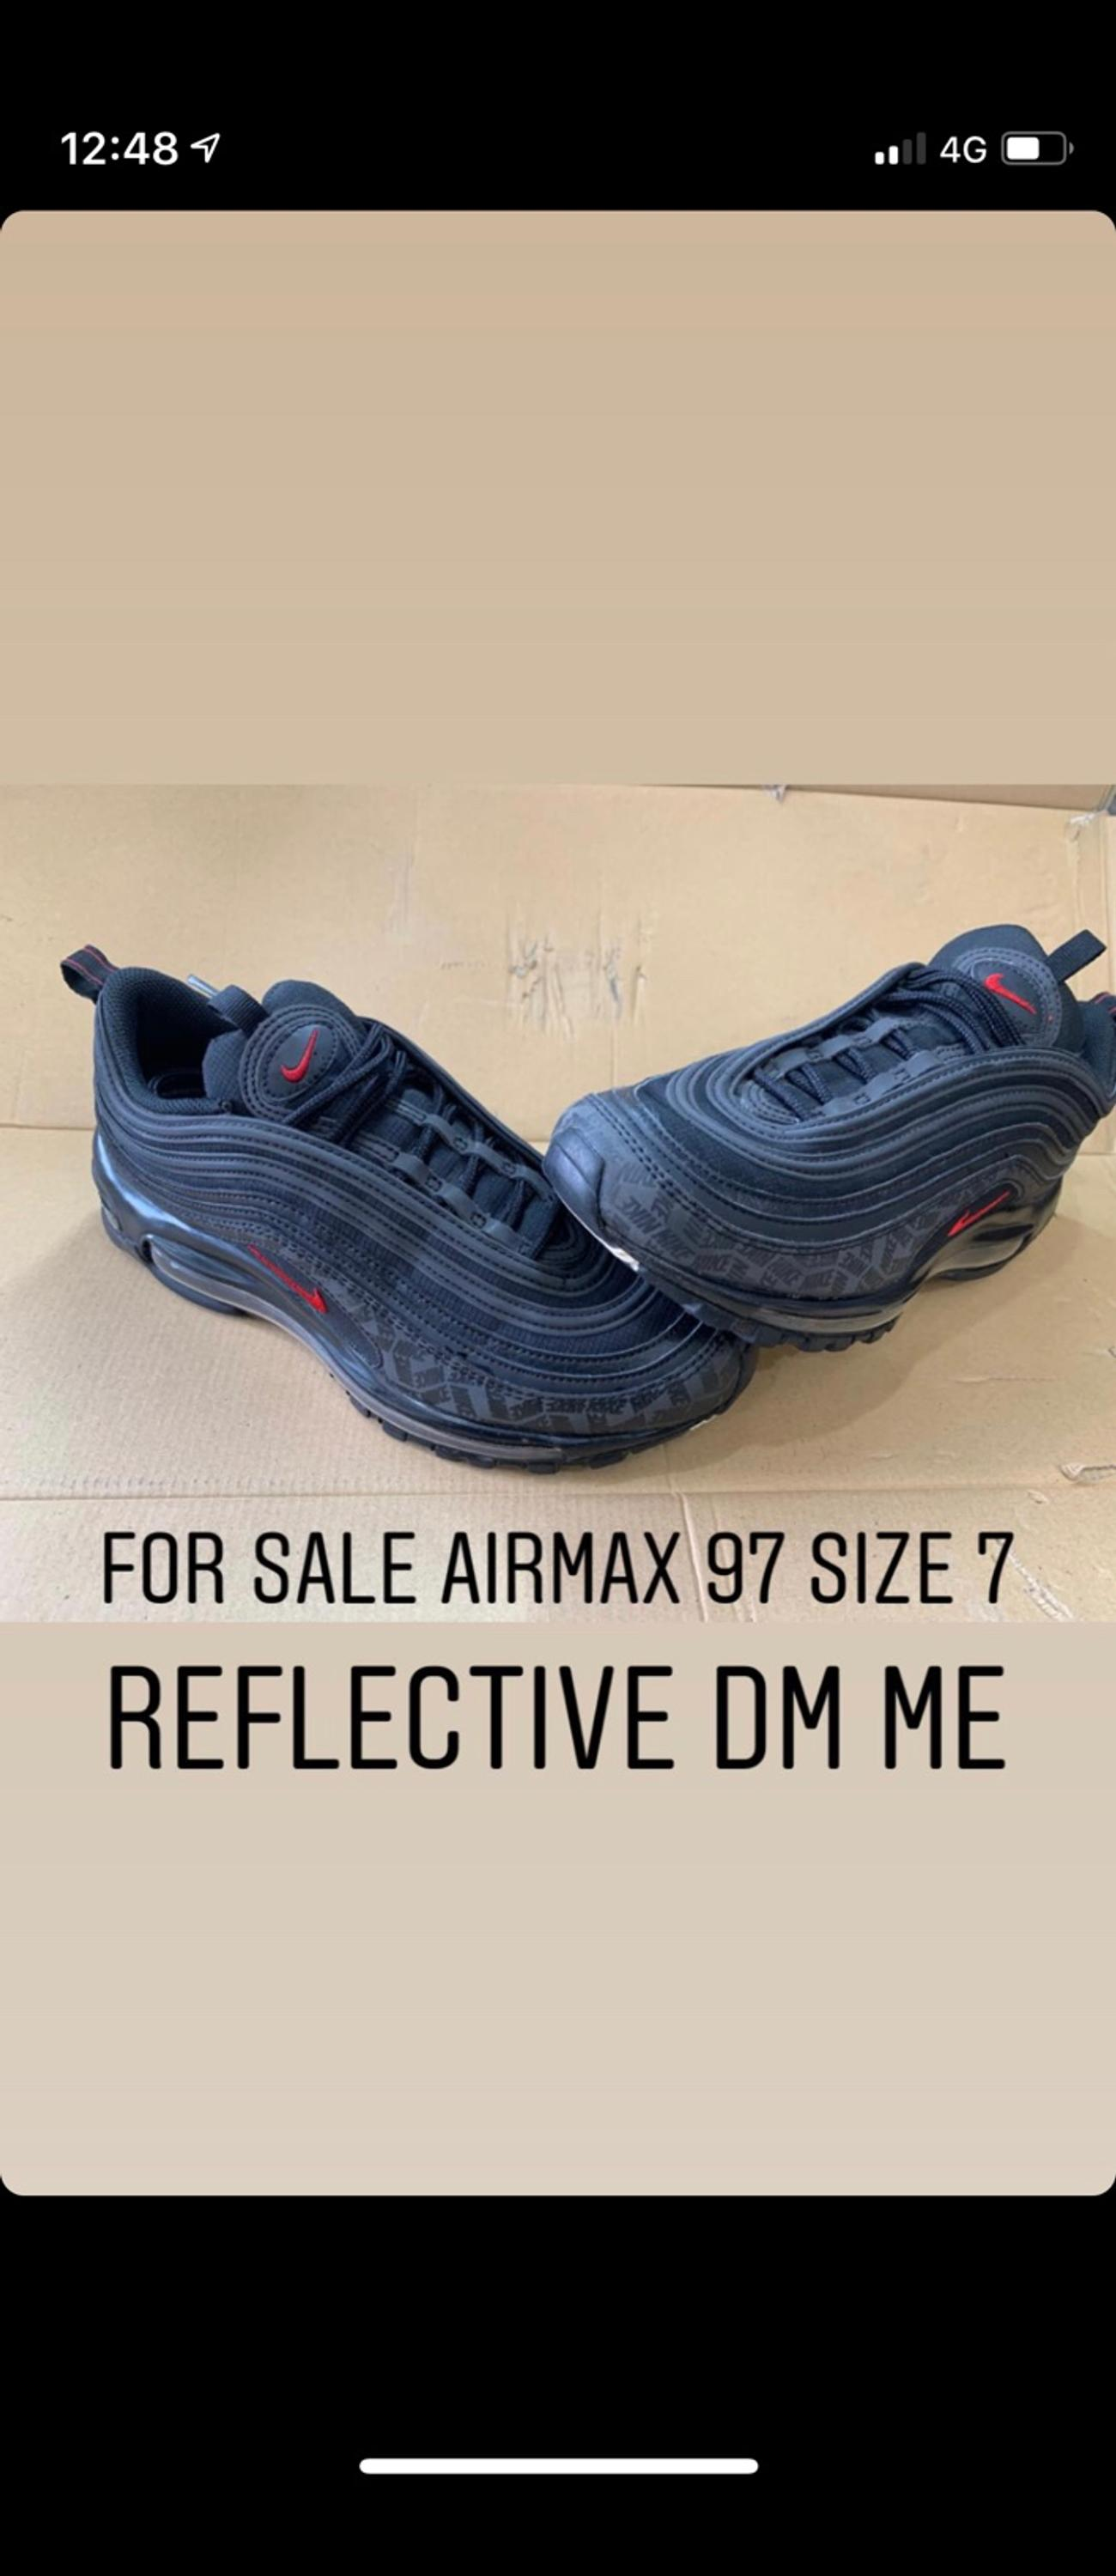 low priced 6c54d 3c04c Air max 97 reflective